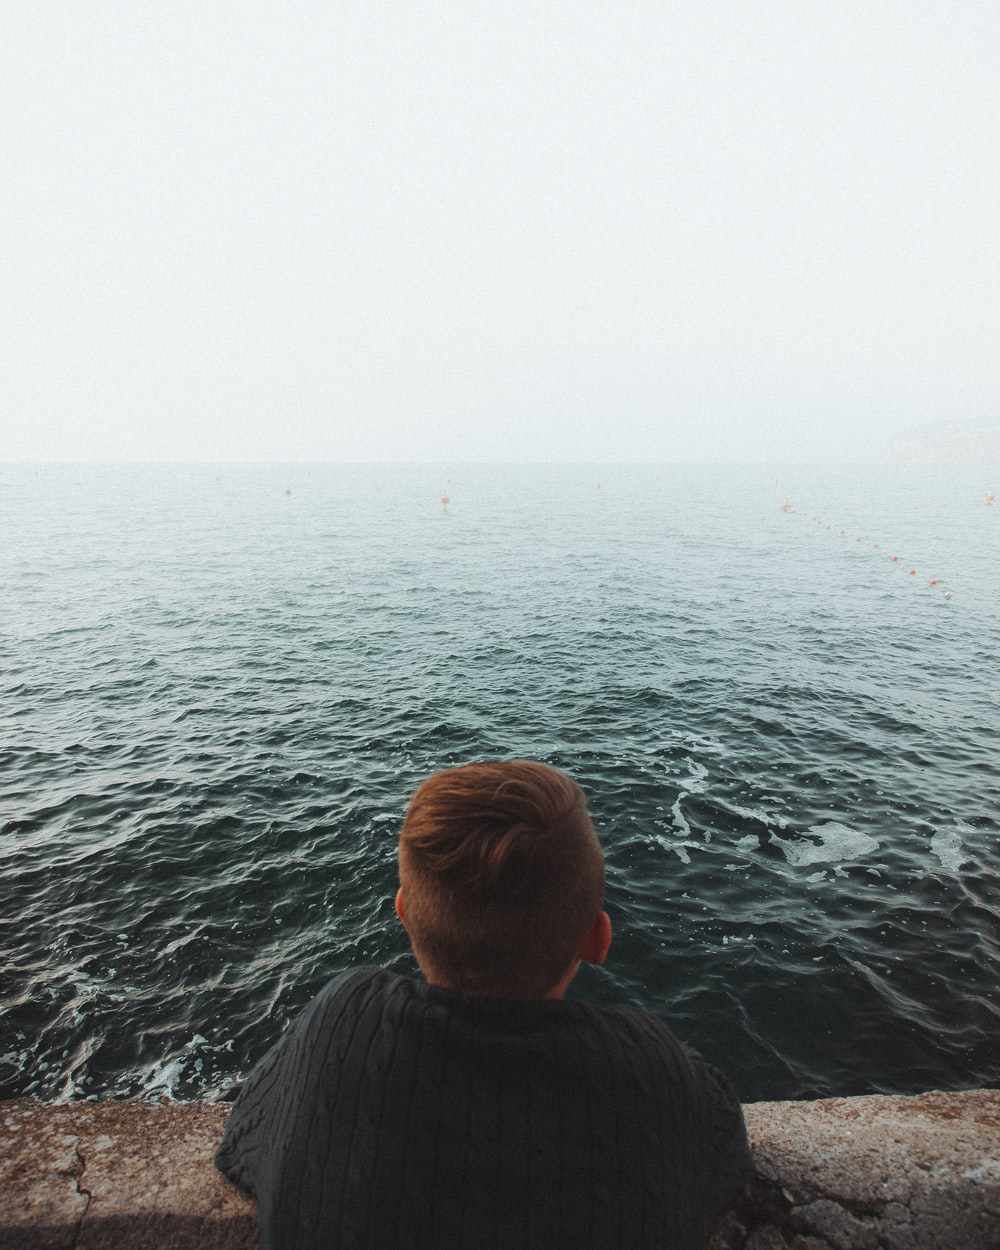 person looking at ocean during daytime